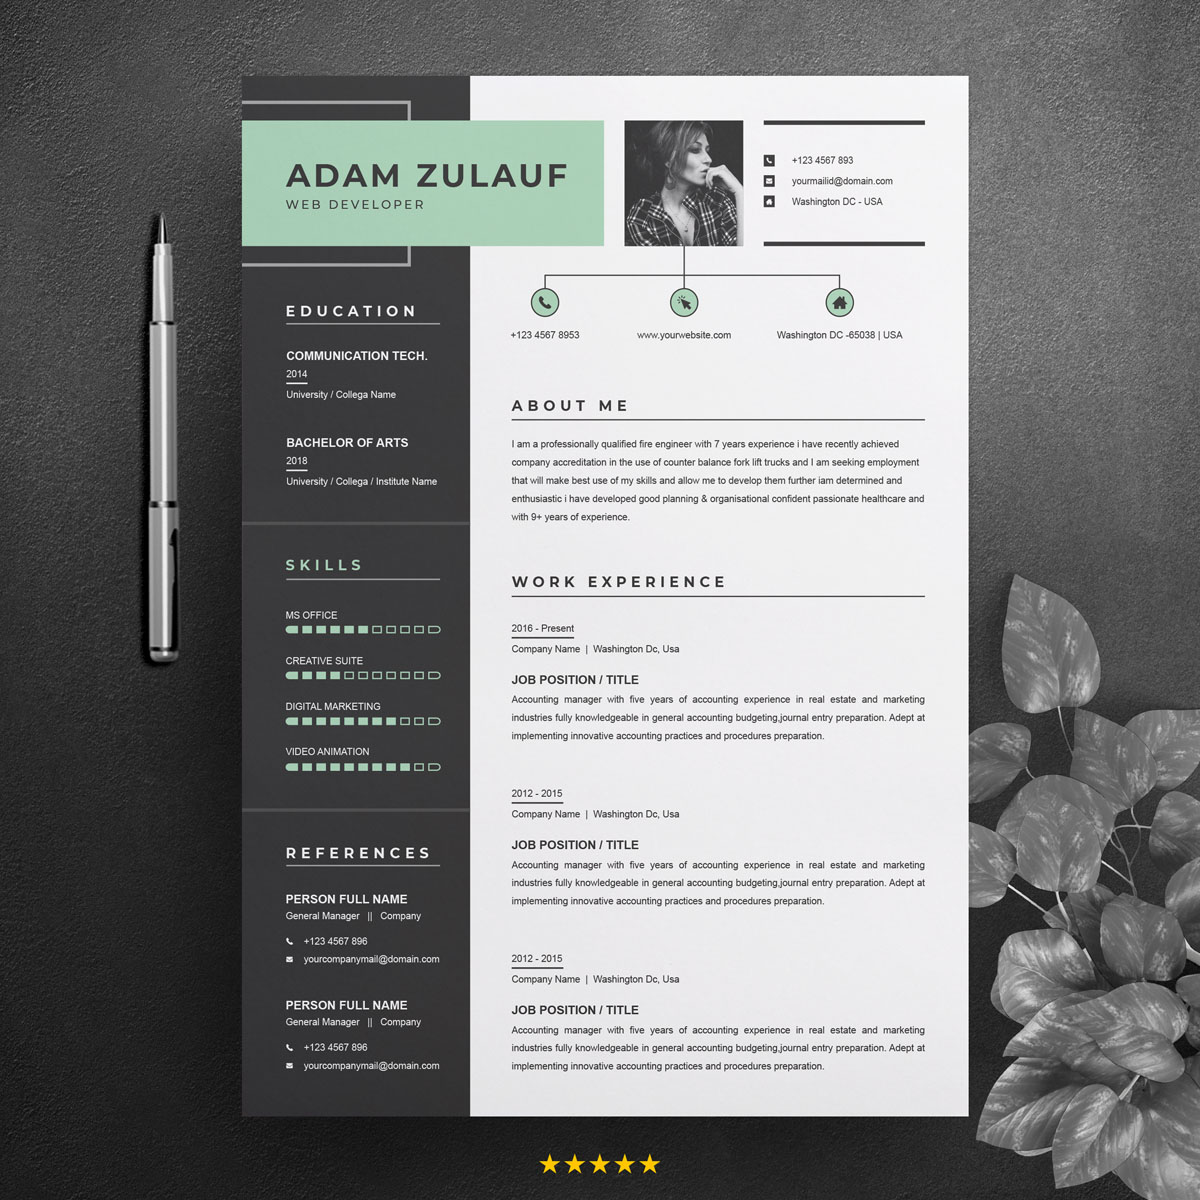 Adam Zulauf Resume Template